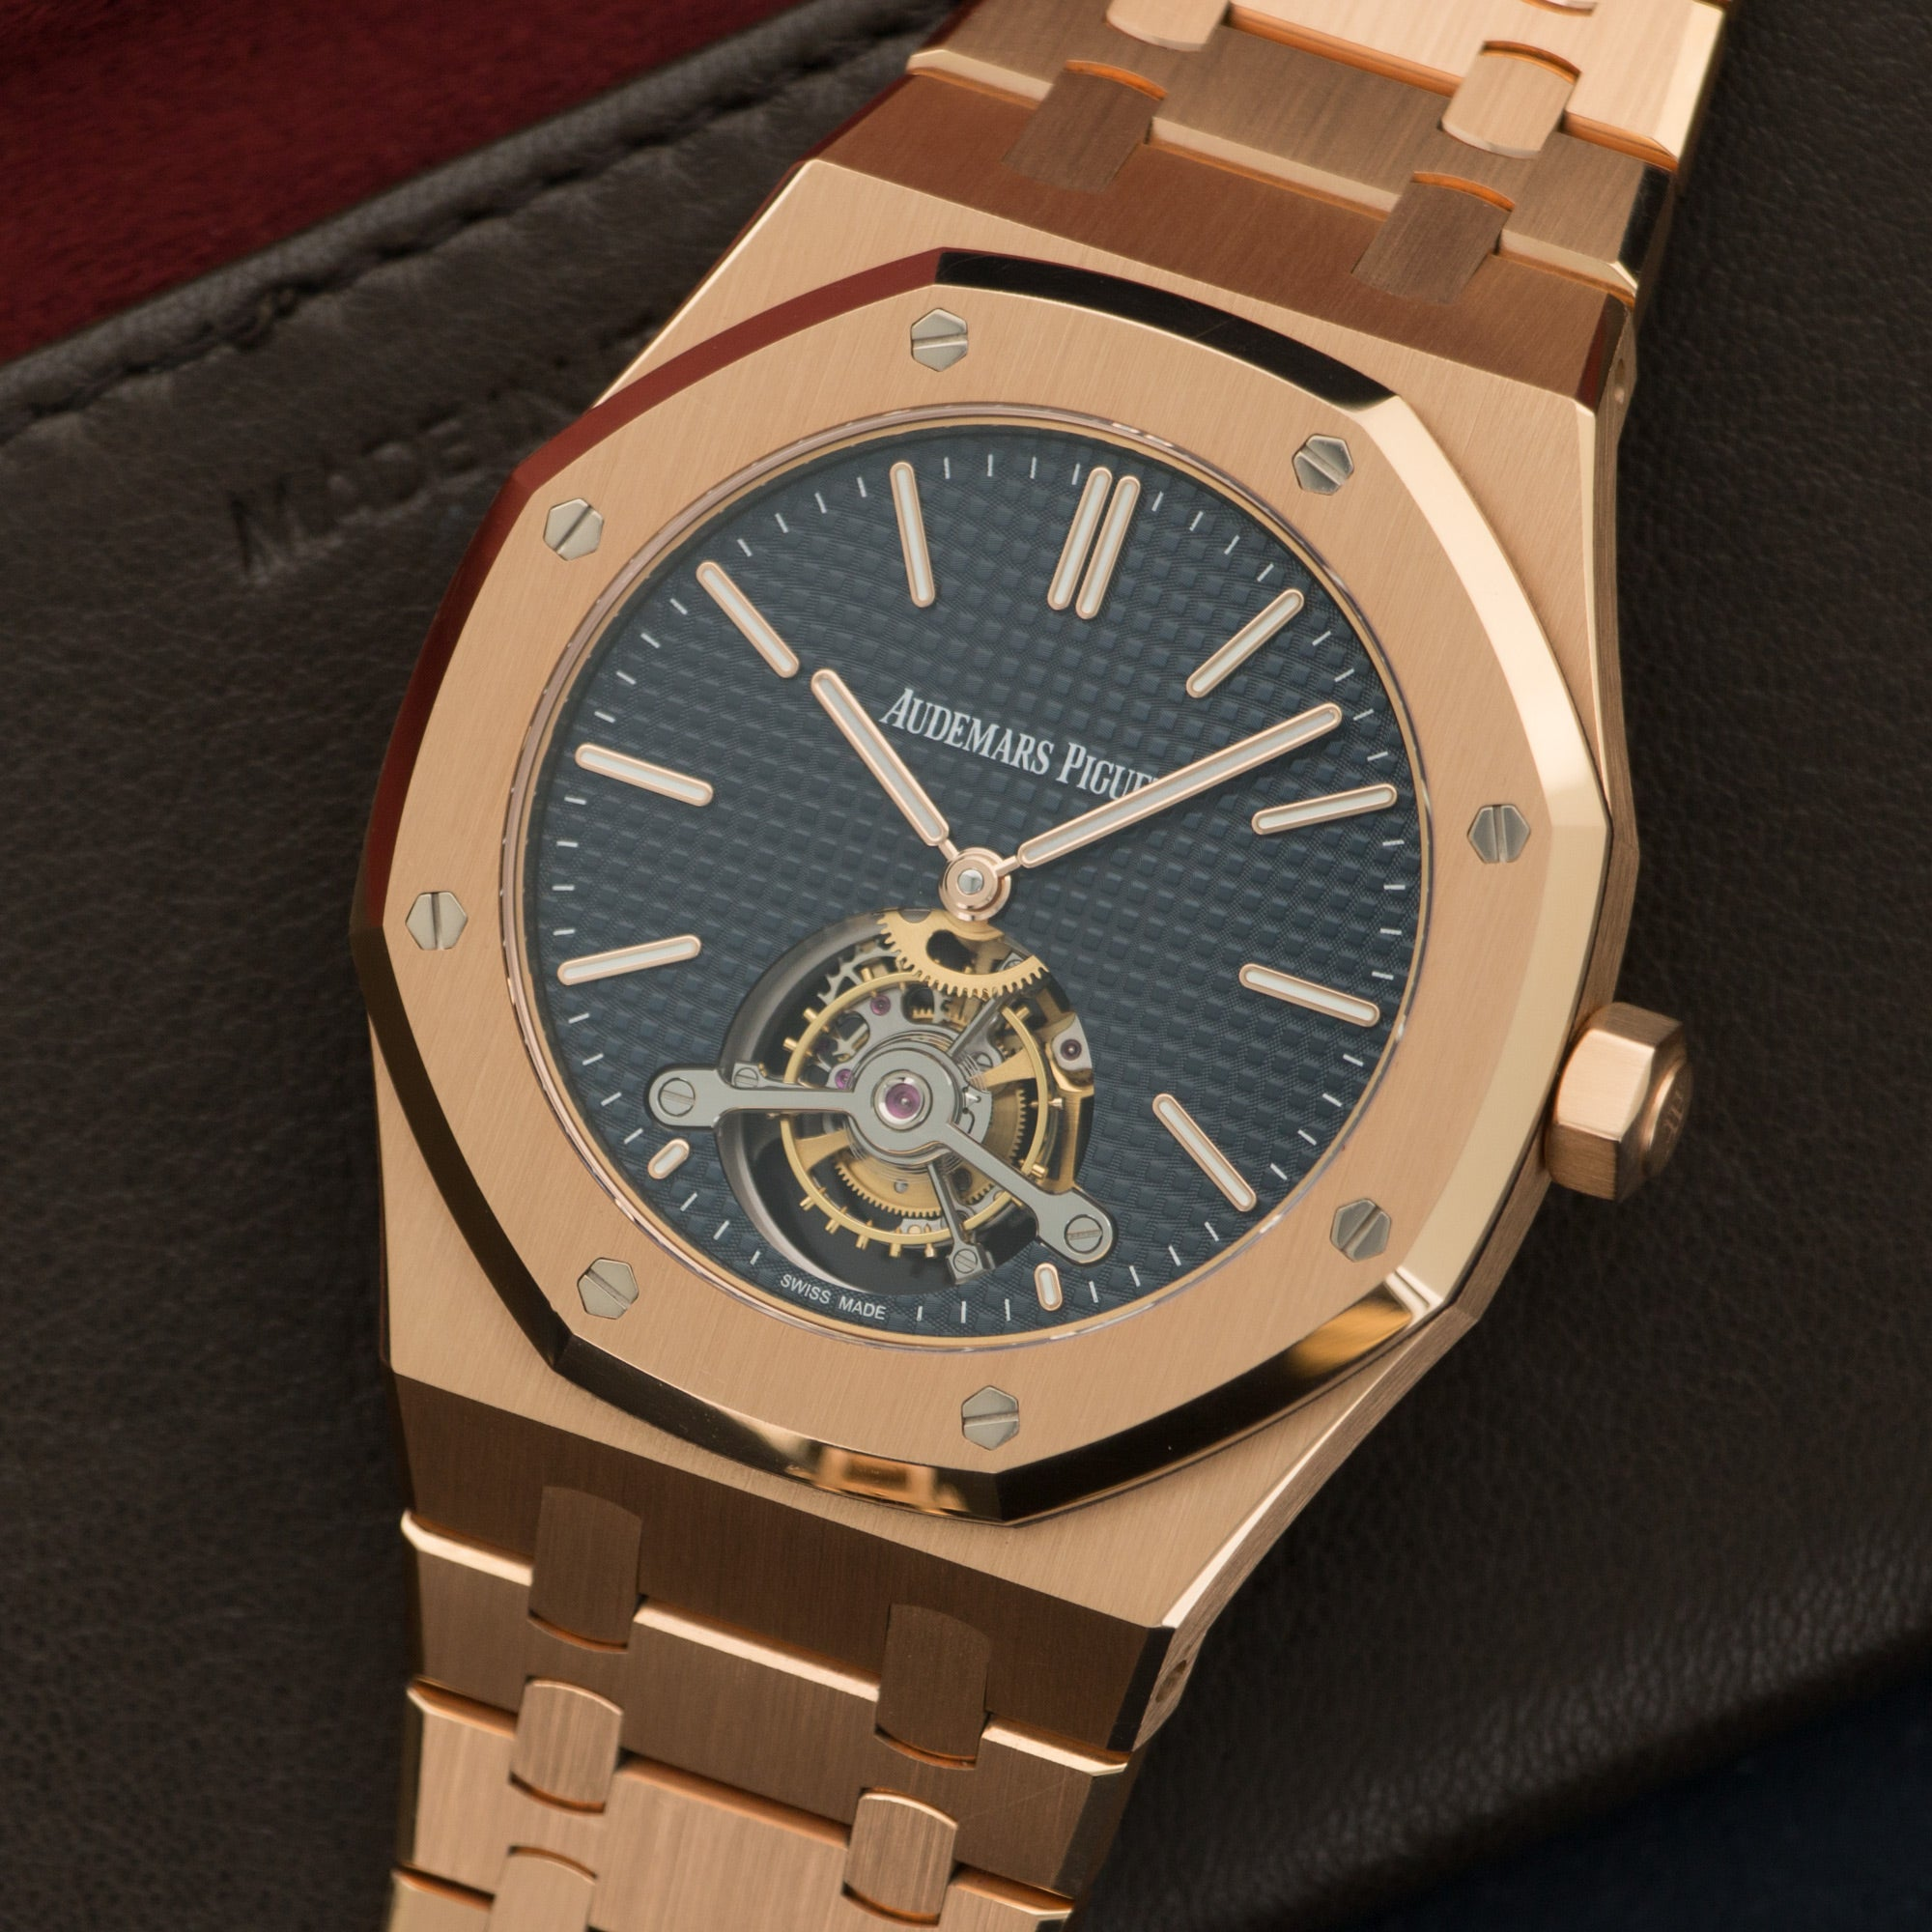 Audemars Piguet Royal Oak 26510OR.OO.1220OR.01 18k RG  Overall Mint Original Condition Gents 18k RG Dark Blue 41mm Manual 2016 Rose Gold Bracelet Original Box and Certificate